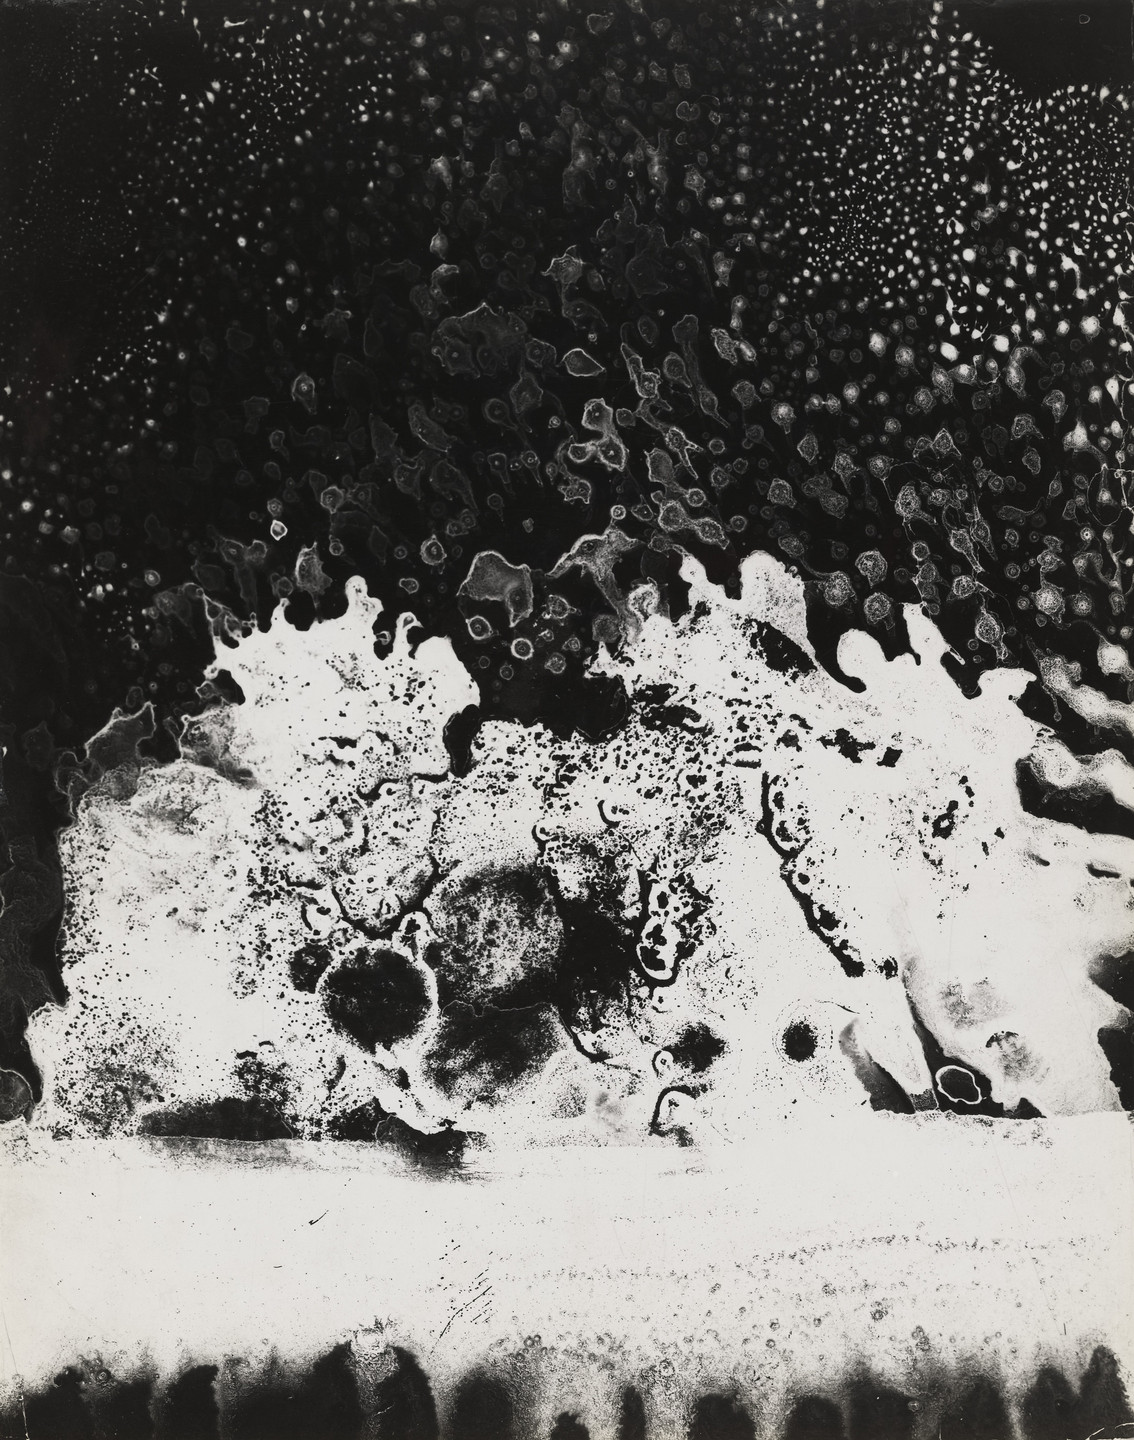 György Kepes. Abstraction--Surface Tension #2. c. 1940